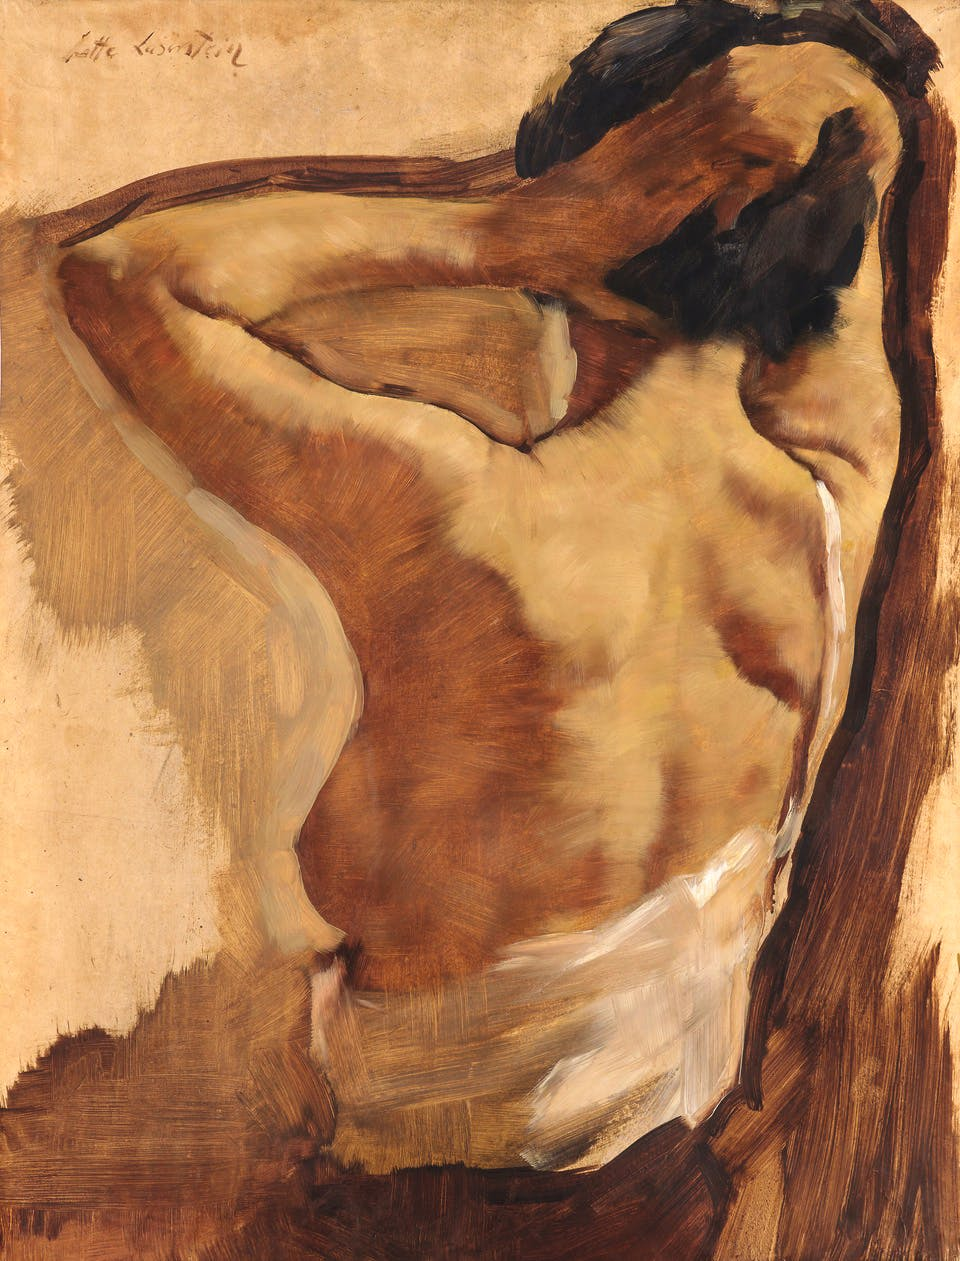 Rear Nude with Raised Arms (1930s), Lotte Laserstein.